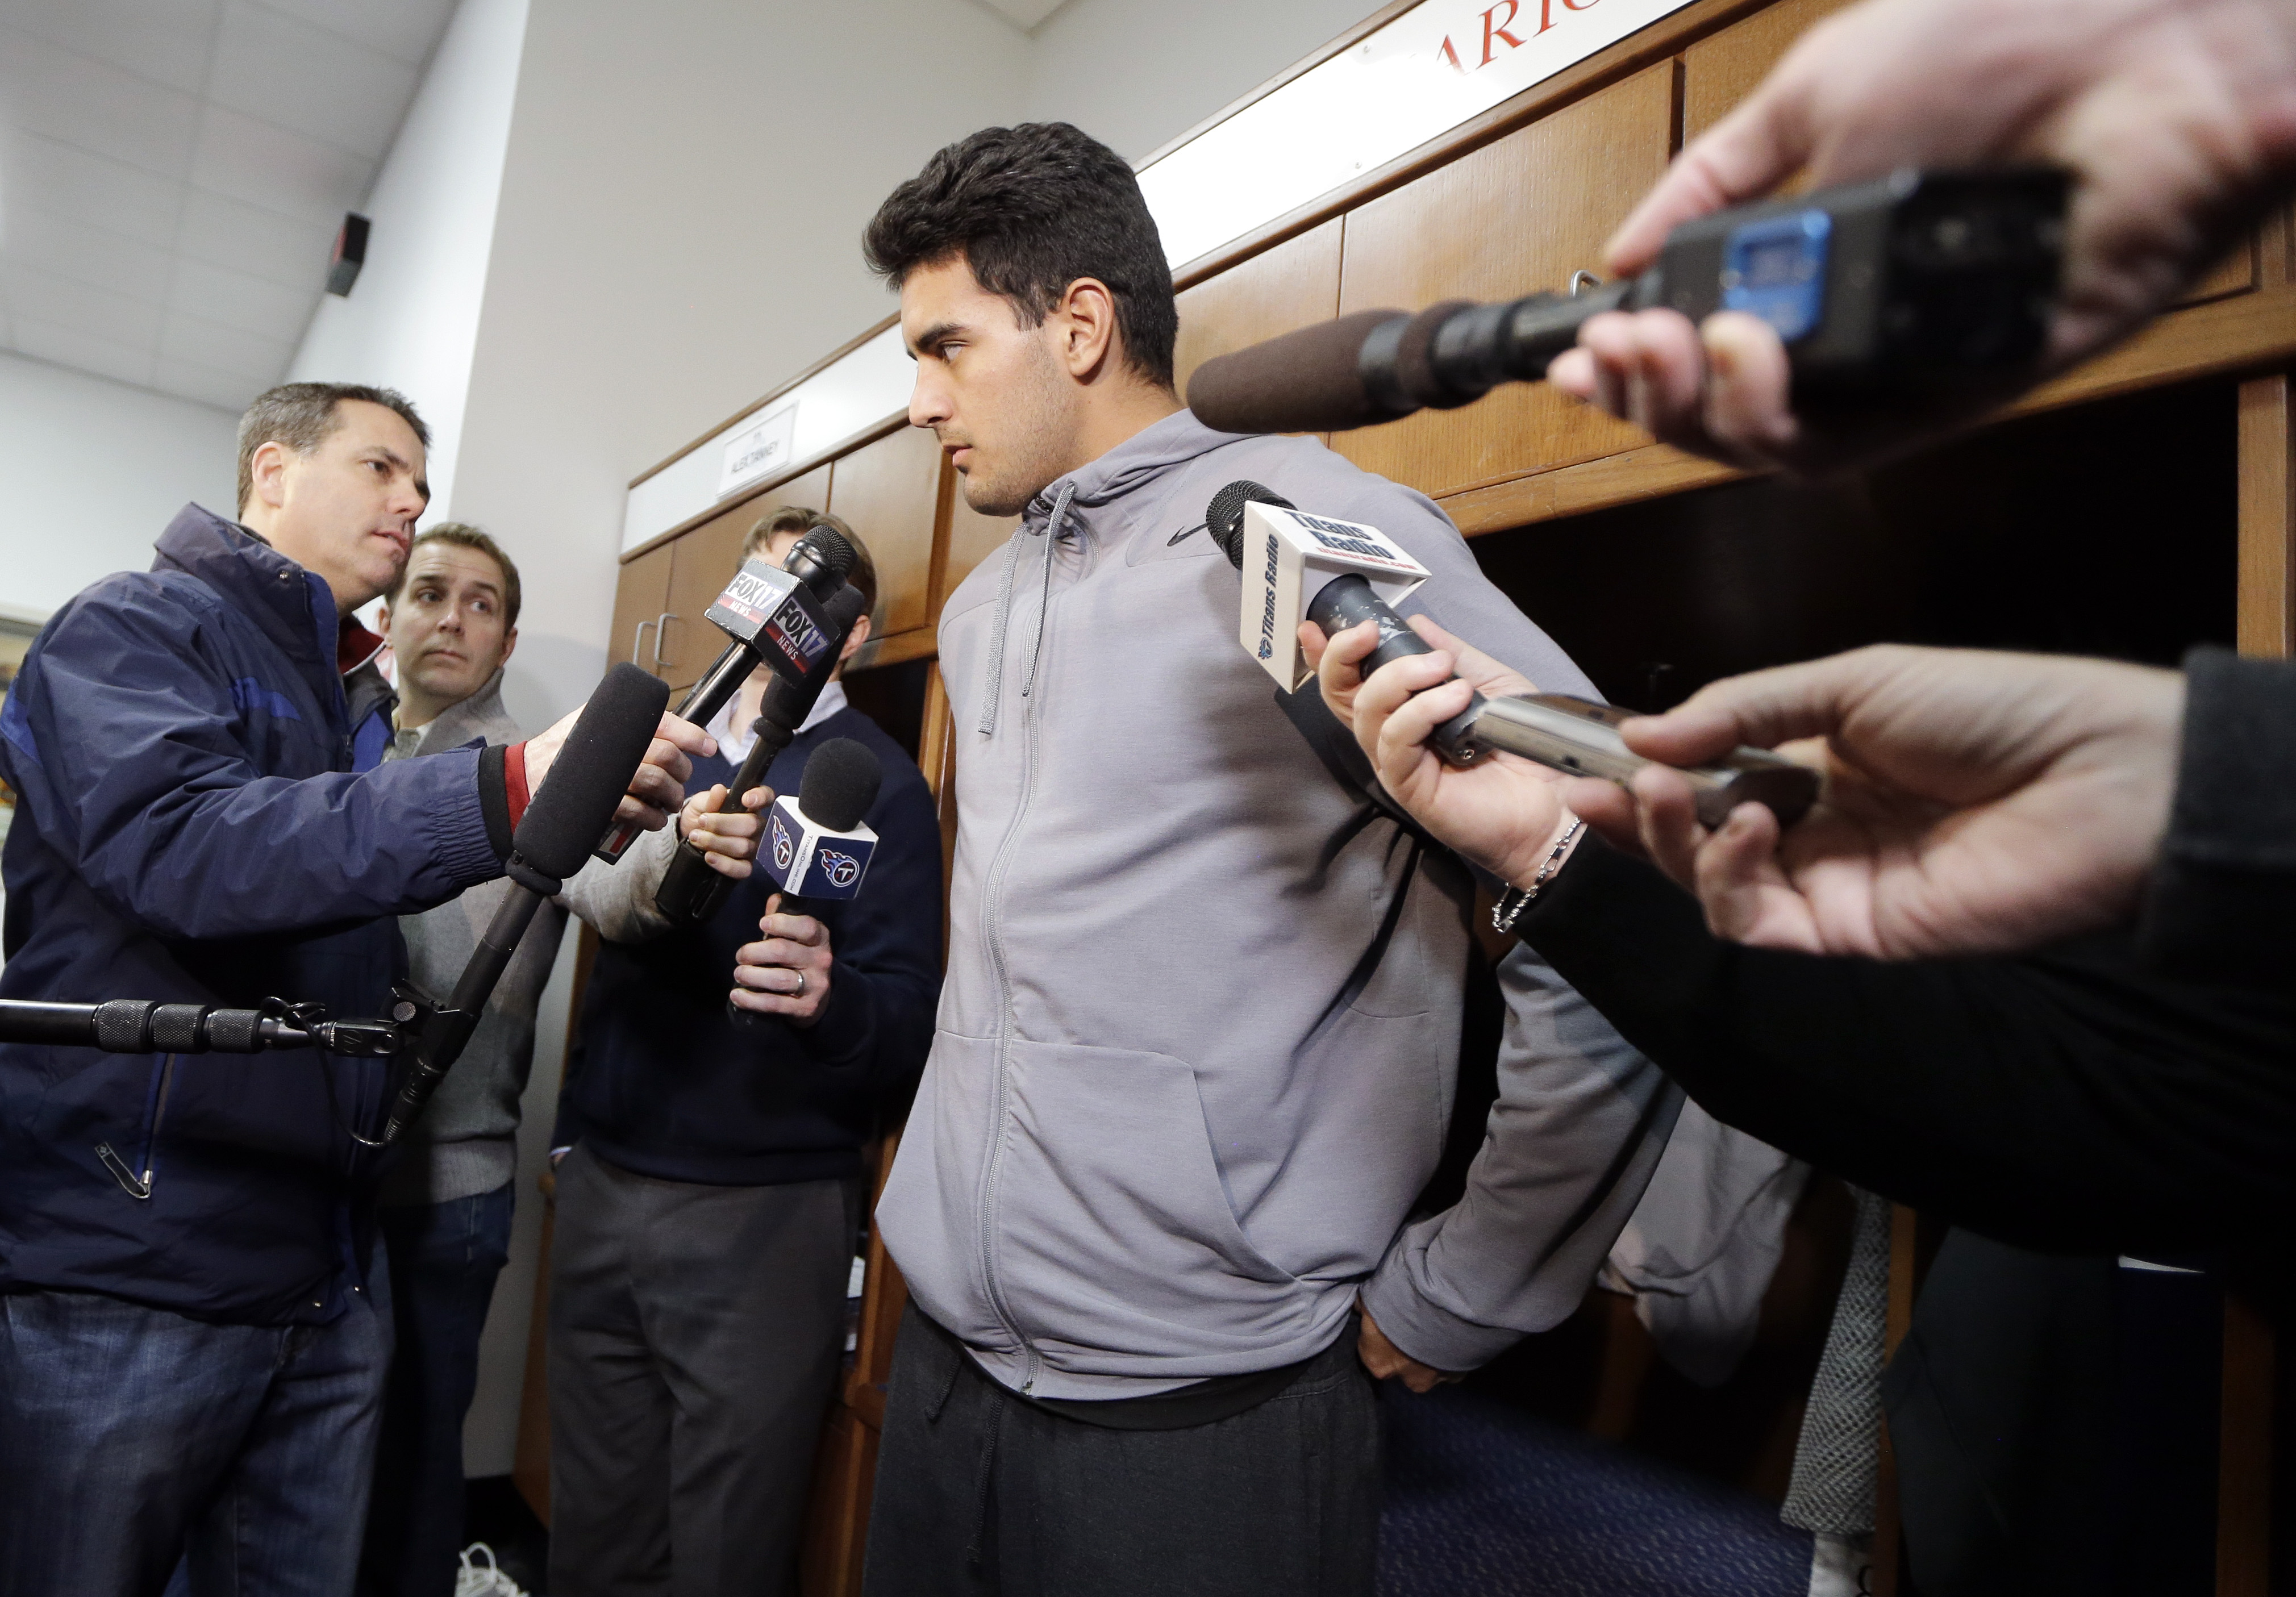 Tennessee Titans quarterback Marcus Mariota talks with reporters Monday, Jan. 4, 2016, in Nashville, Tenn. The Titans finished the season 3-13. The team announced Monday that the contract of general manager Ruston Webster will not be renewed and interim h